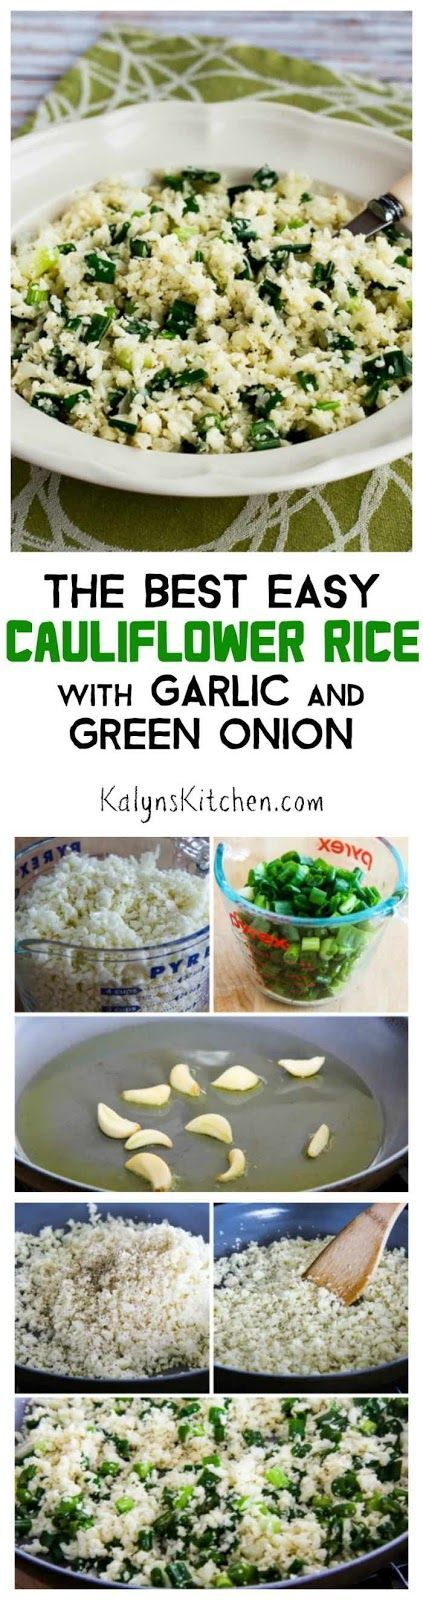 Cauliflower rice has become a classic low-carb dish and there are lots of cauliflower rice recipes out there, but this recipe for The Best Easy Cauliflower Rice with Garlic and Green Onion is the one I make over and over! And this delicious cauliflower rice is low-carb, Keto, low-glycemic, gluten-free, dairy-free, vegan, Paleo, Whole 30, and South Beach Diet friendly! [found on KalynsKitchen.com] #CauliflowerRice #LowCarb #Keto #GlutenFree